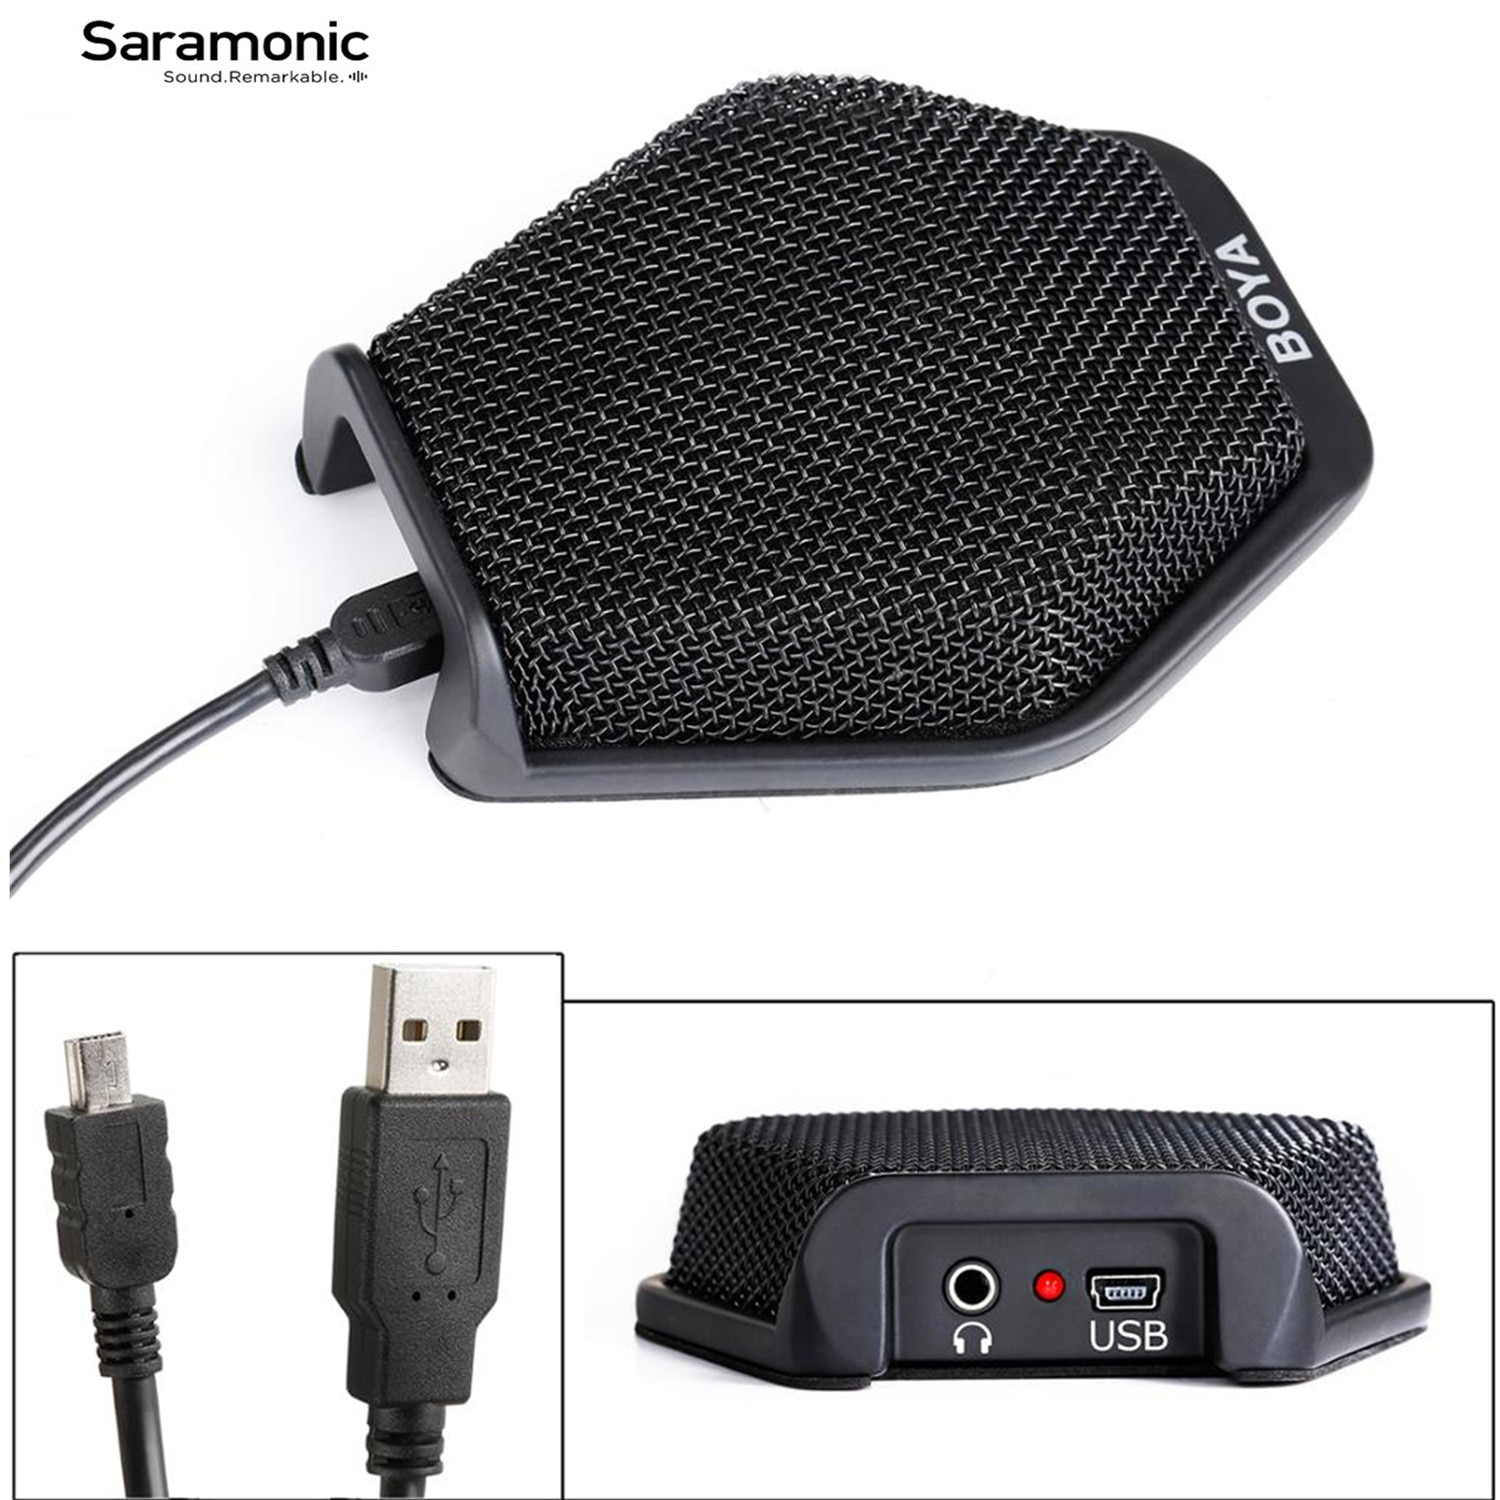 BOYA BY-MC2 USB Condenser Desktop Conference Computer Microphone with 180 Degree / 20' Pickup Range for Windows & Mac & Laptop